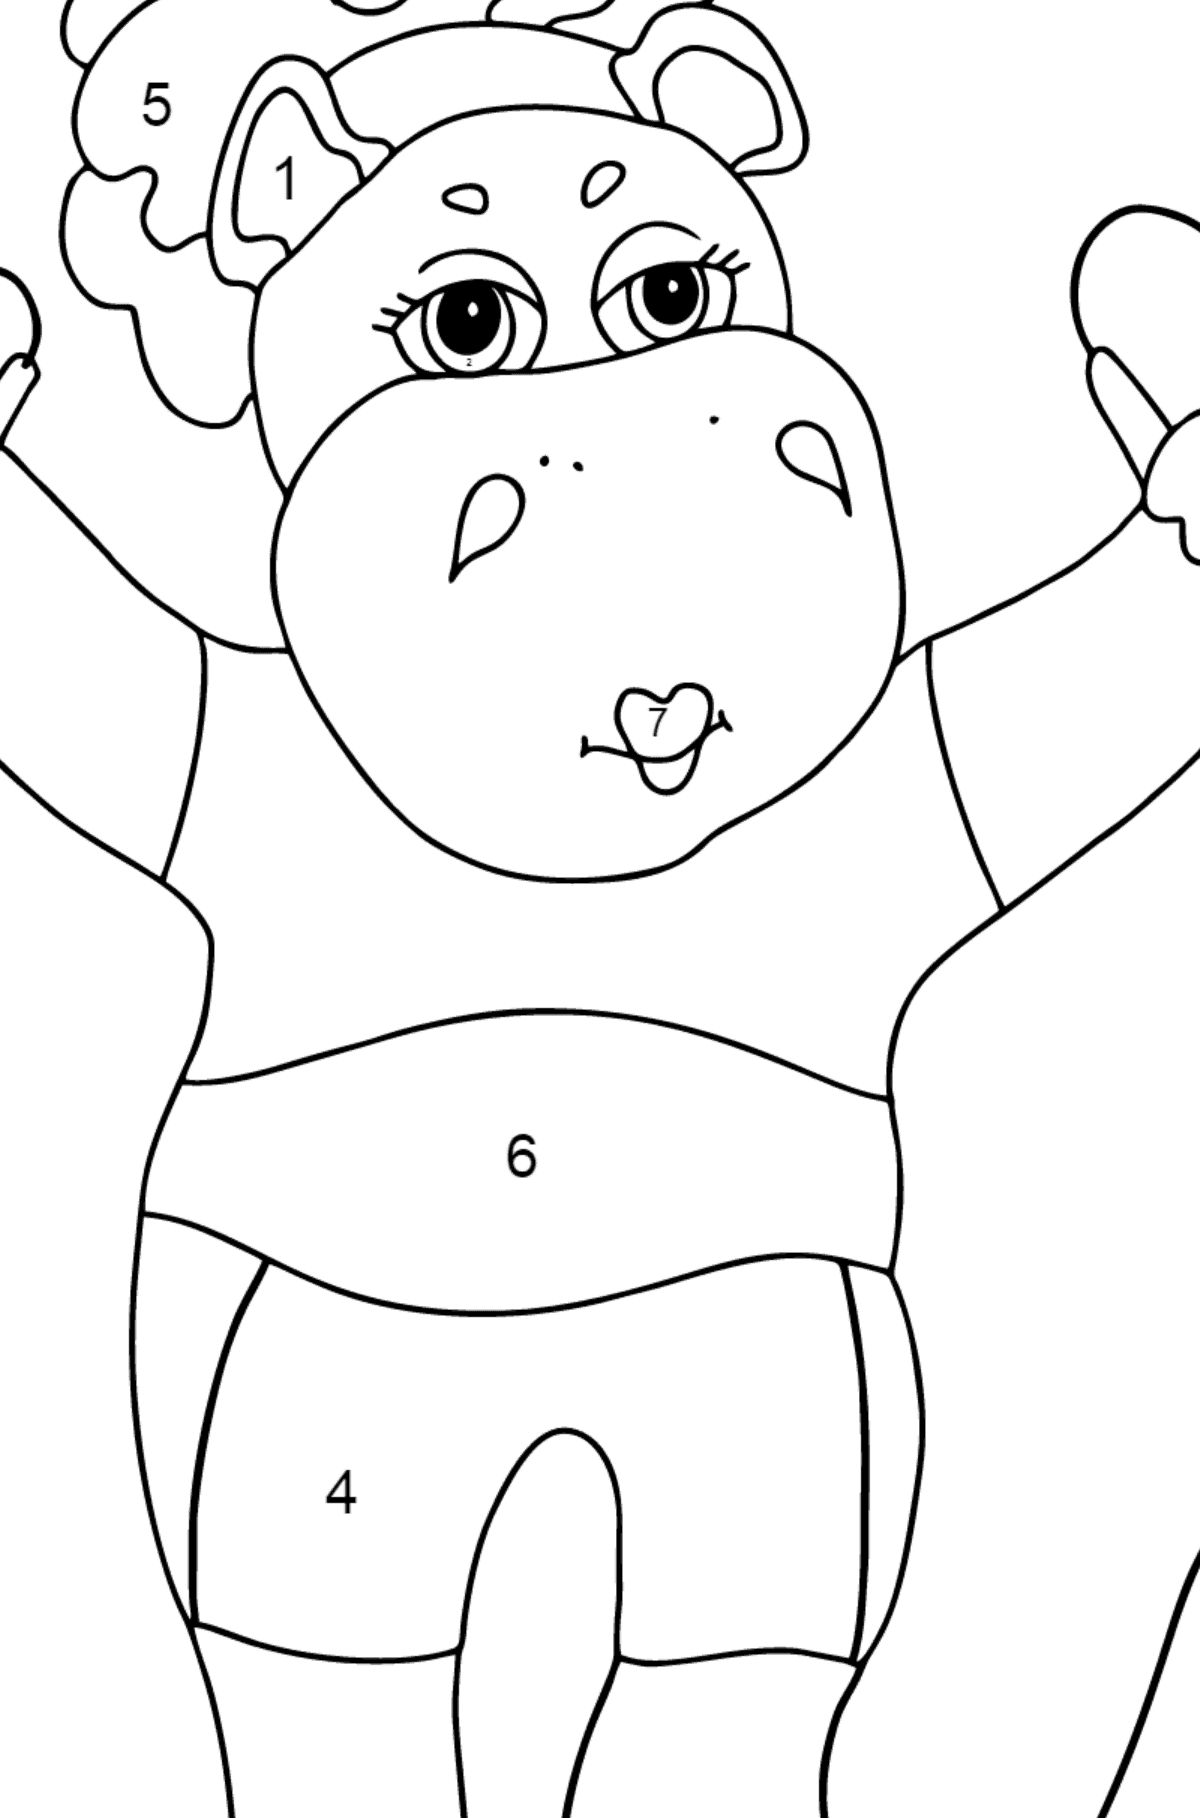 Coloring Page - A Hippo with a Jump Rope for Kids  - Color by Number